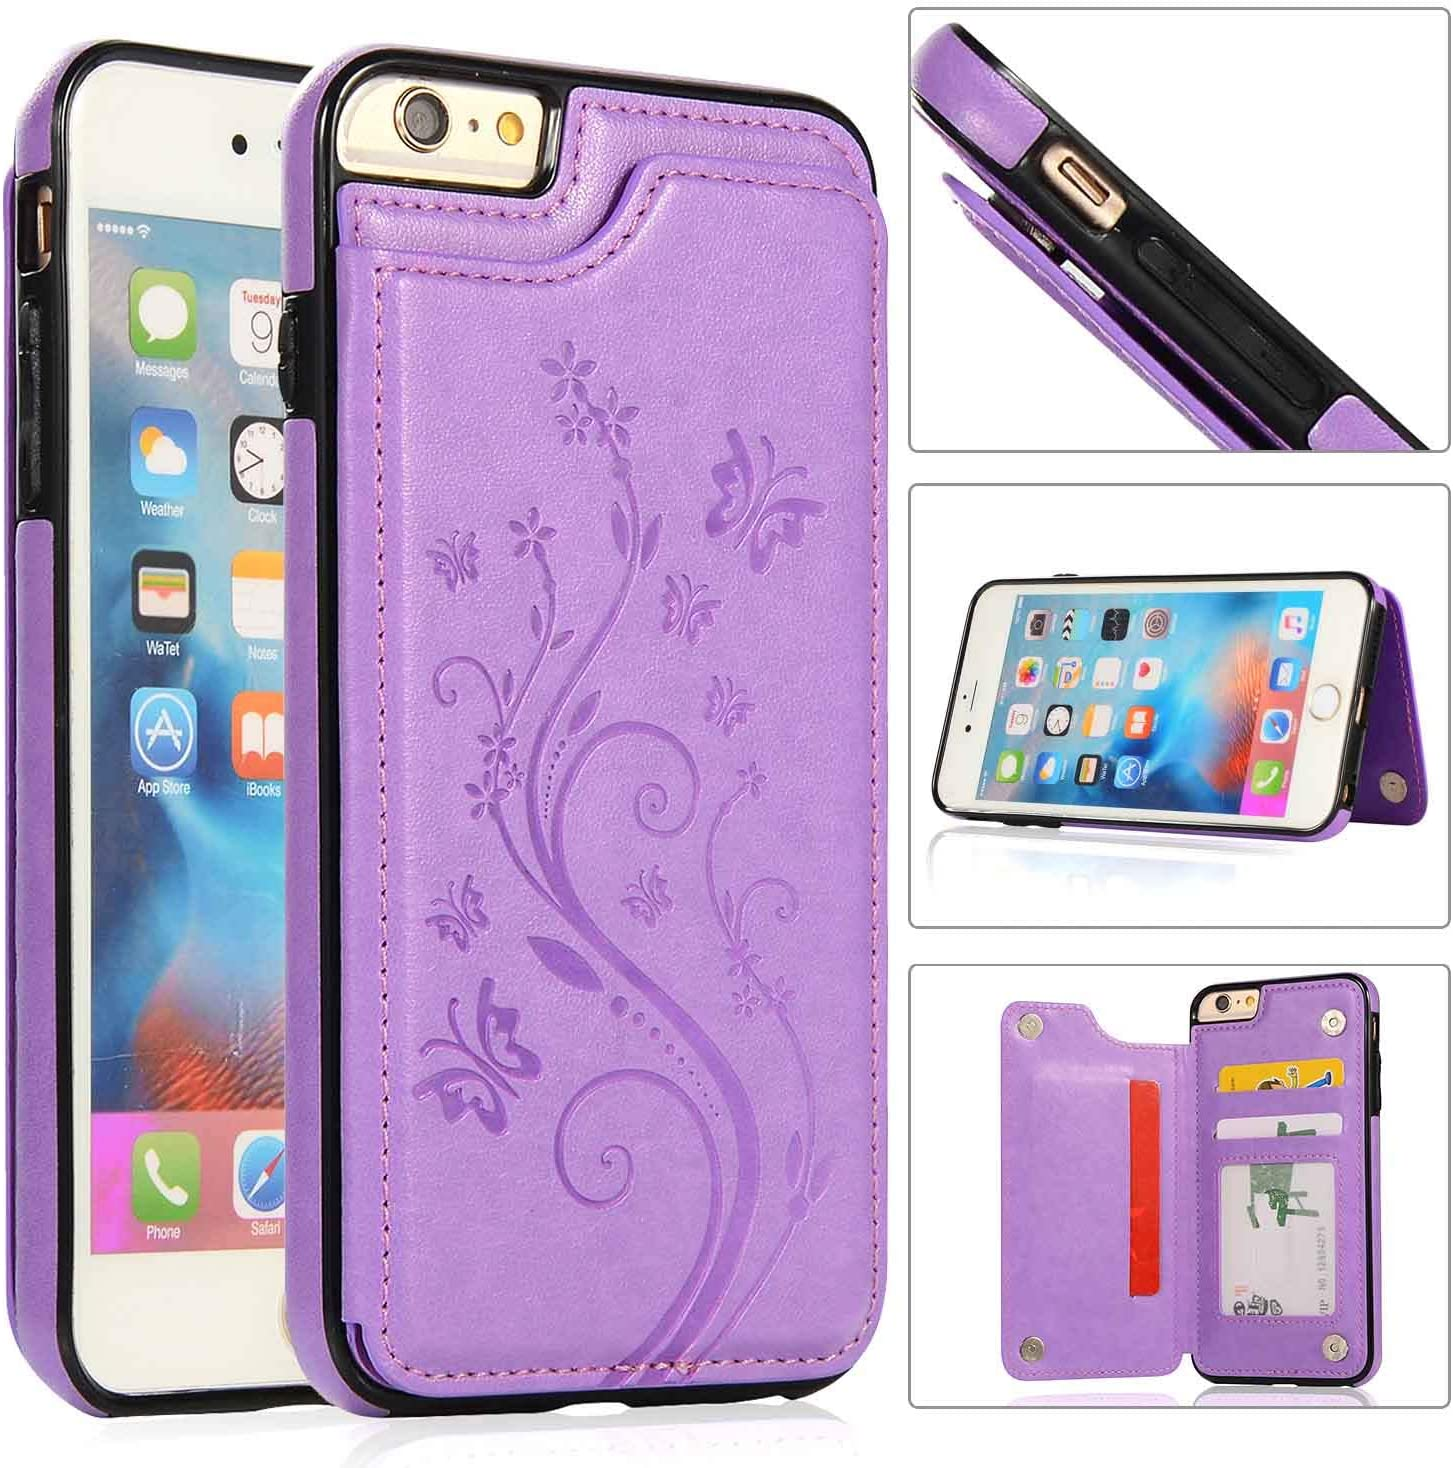 iPhone 6S Plus Wallet Case,iPhone 6 Plus Slim Fit Wallet Case for Women/Men,Aprilday Premium iPhone 6 Plus Leather Case [Butterfly Flower] Durable Cover with Card Holder&Kickstand -5.5in B+Purple